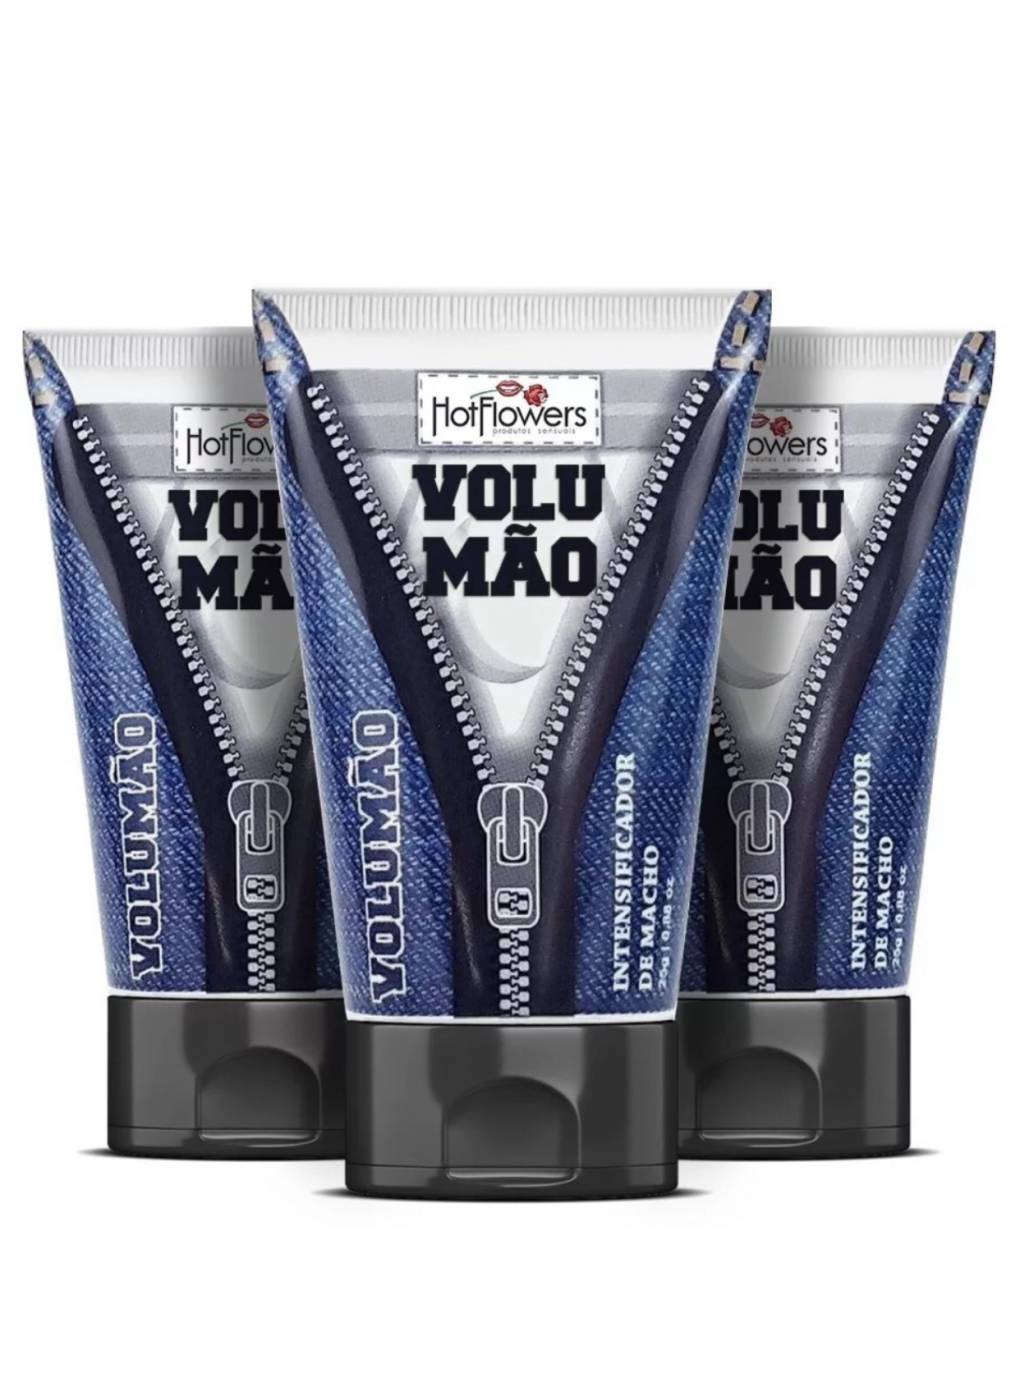 Volumão Gel Excitante Vasodilatador e Intensificador de Macho Kit 3 Unidades - Hot Flowers 25g